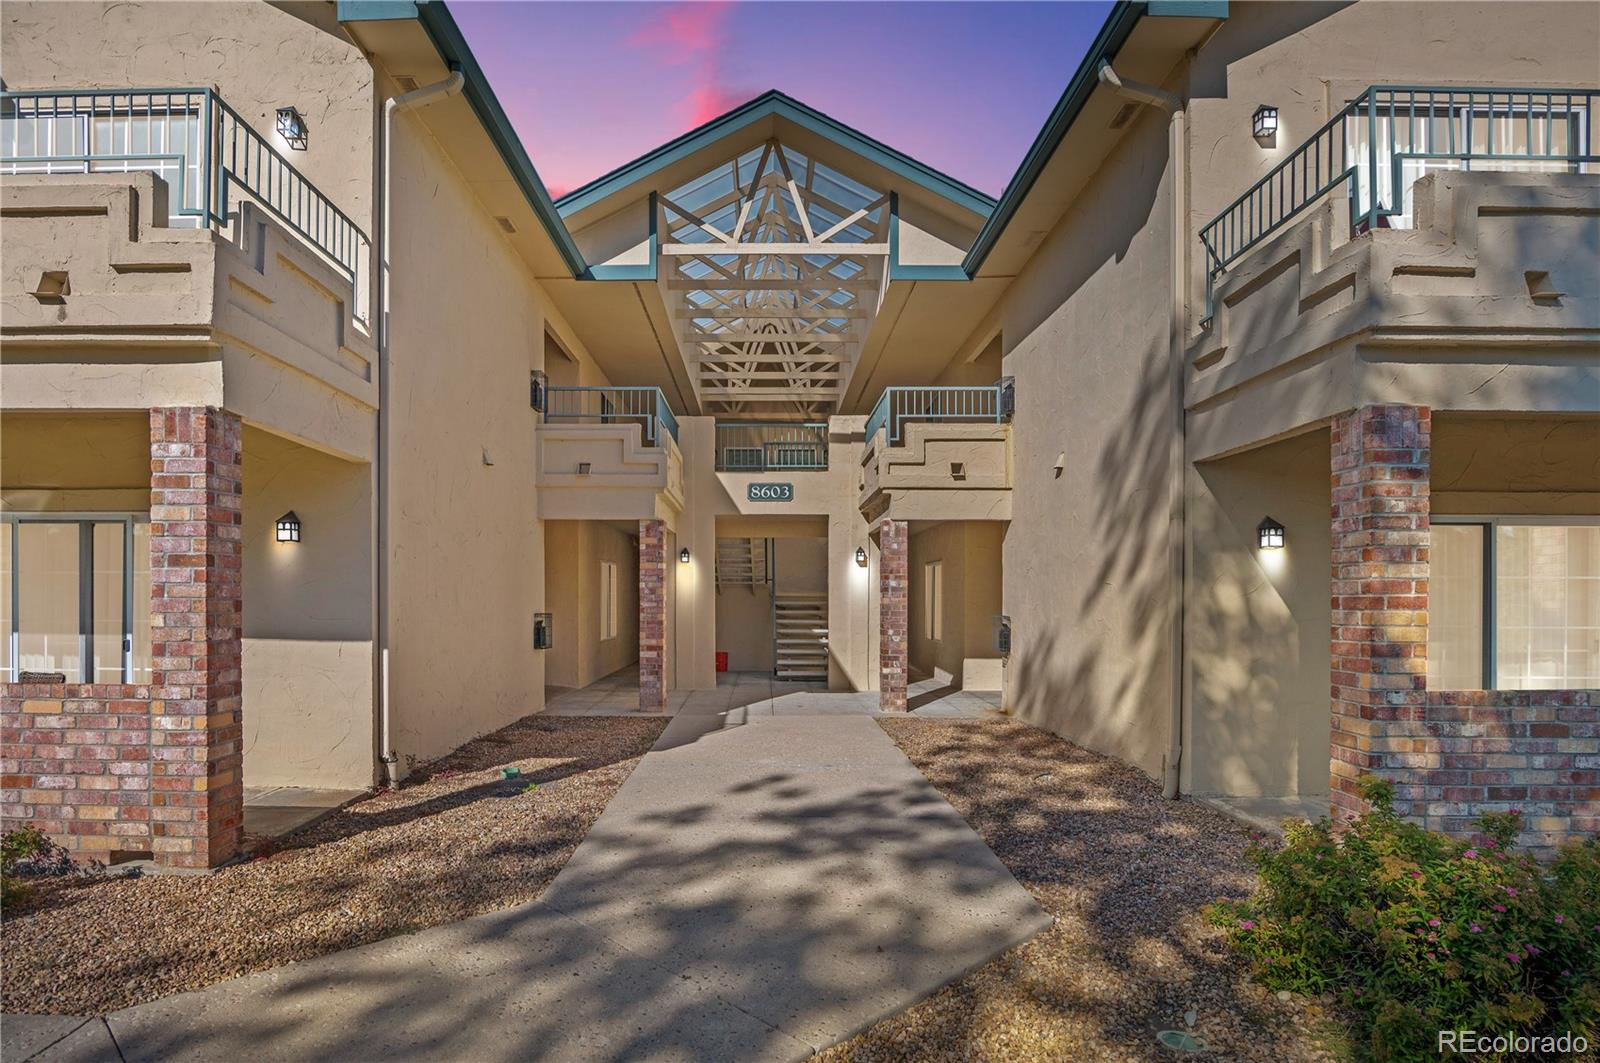 Showings will begin Saturday October 16th .This is a spectacular second level unit with vaulted ceilings located in the coveted Saddle Ridge Condominiums complex. Two bedrooms and two bathrooms with an attached garage.   The open floor plan offers a cozy fireplace in the living room which opens to the kitchen. The master bedroom features a walk in closet and its own private bathroom. A full sized washer and dryer in the unit are already installed and ready for you to use!   Conveniently located close to I-25 and C-470, the location is perfection with easy access to utilize the Dry Creek Light Rail Station, and is conveniently located in the very desirable, Denver Tech Center (DTC).   This unit is located in the renowned  Cherry Creek School district! The development offers a clubhouse that contains a gym, a pool, and a hot-tub. Seller pays $23/mo. for an additional reserved uncovered parking spot. The MLS listing information shows the rate that WOULD  NOT include the uncovered spot.  New carpeting was installed on Thursday, please remove your shoes during showings!   All offers due Monday, October 18th by 3 p.m. Response time  to be October 19th at 3pm. Please provide lender letter/proof of funds with offer. Seller has the right to accept an offer at anytime. There are certain rental restrictions for this complex, please call HOA for details.